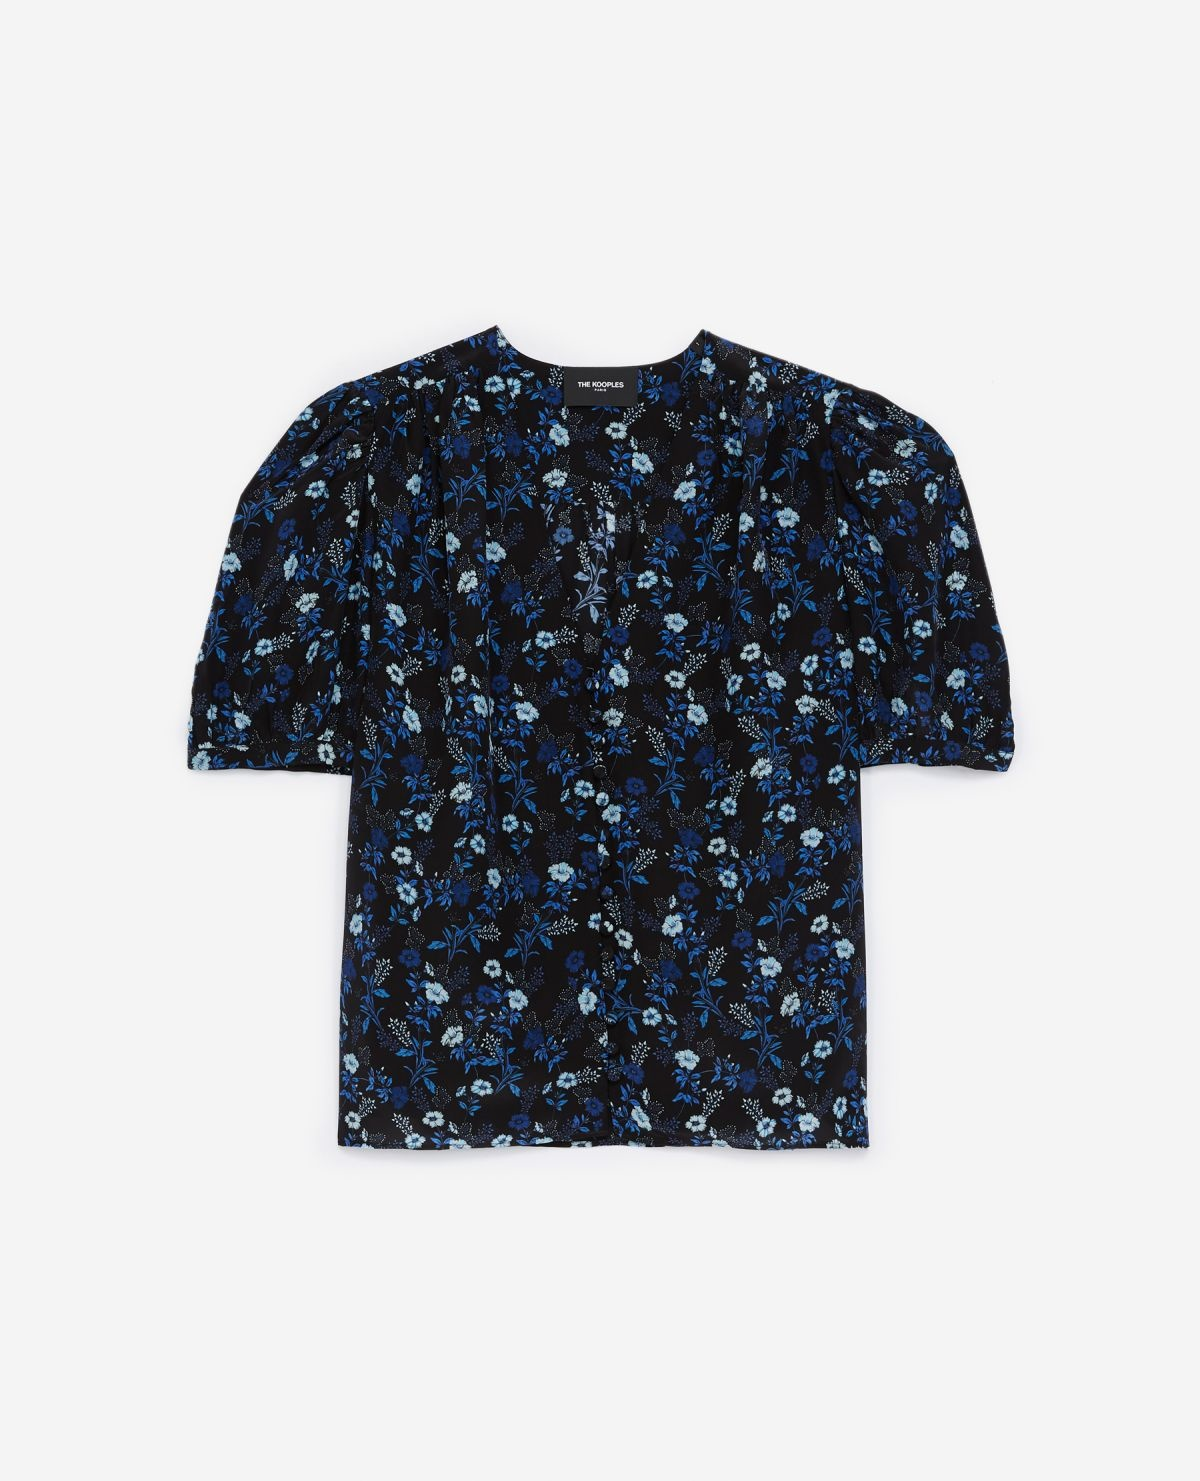 THE KOOPLES chemise bleue col v manches ballons-1